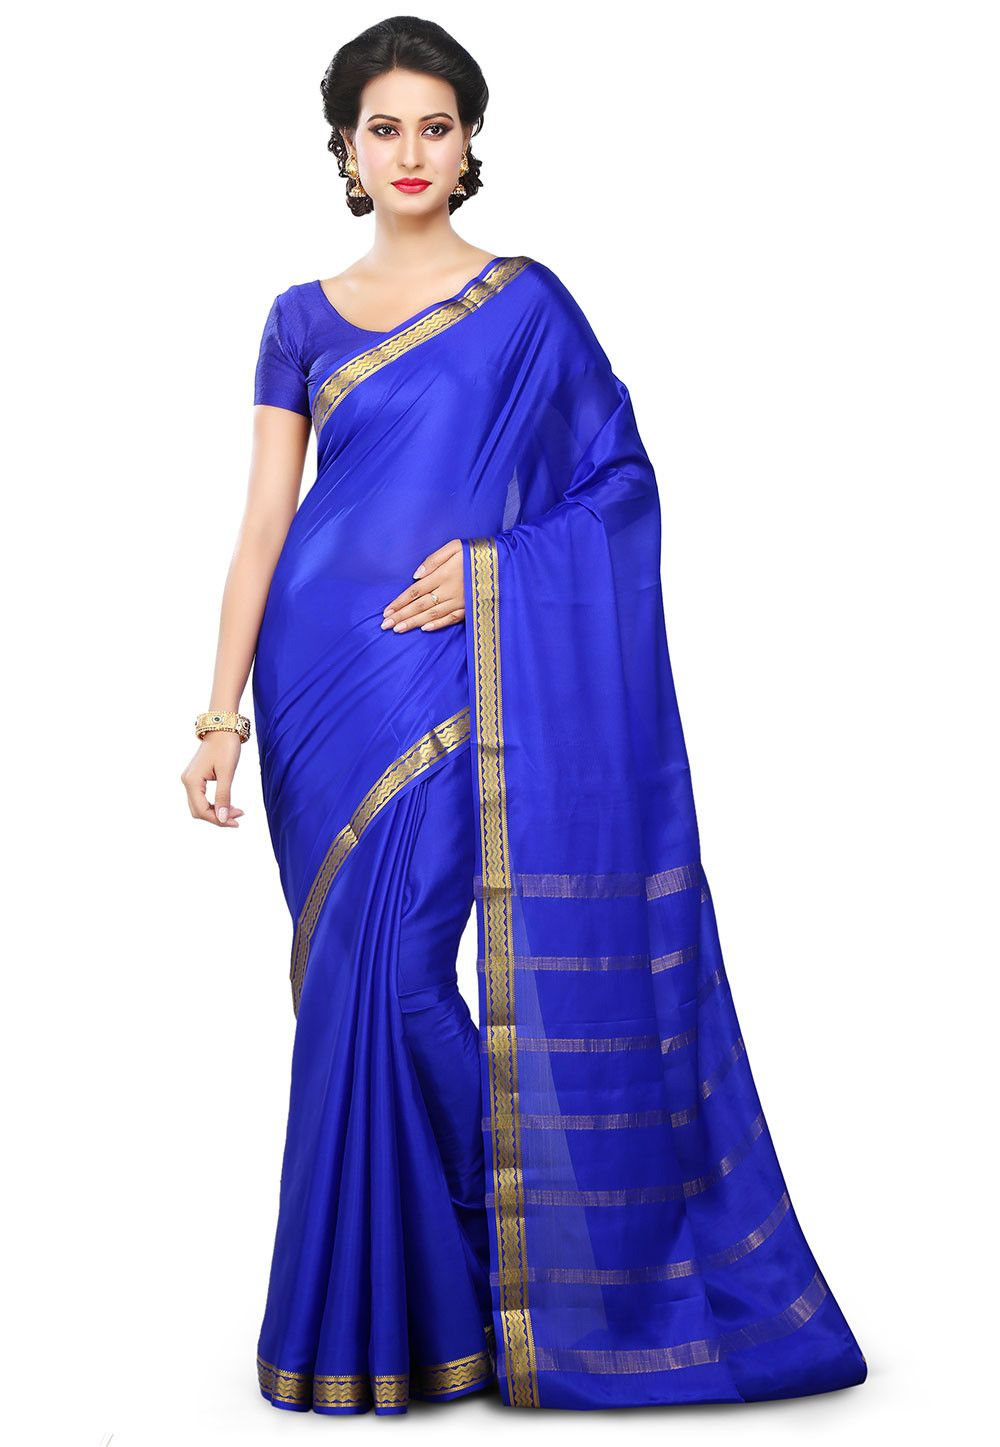 30cc0610a2 Woven Pure Mysore Silk Saree in Royal Blue | sarees in 2019 | Mysore ...